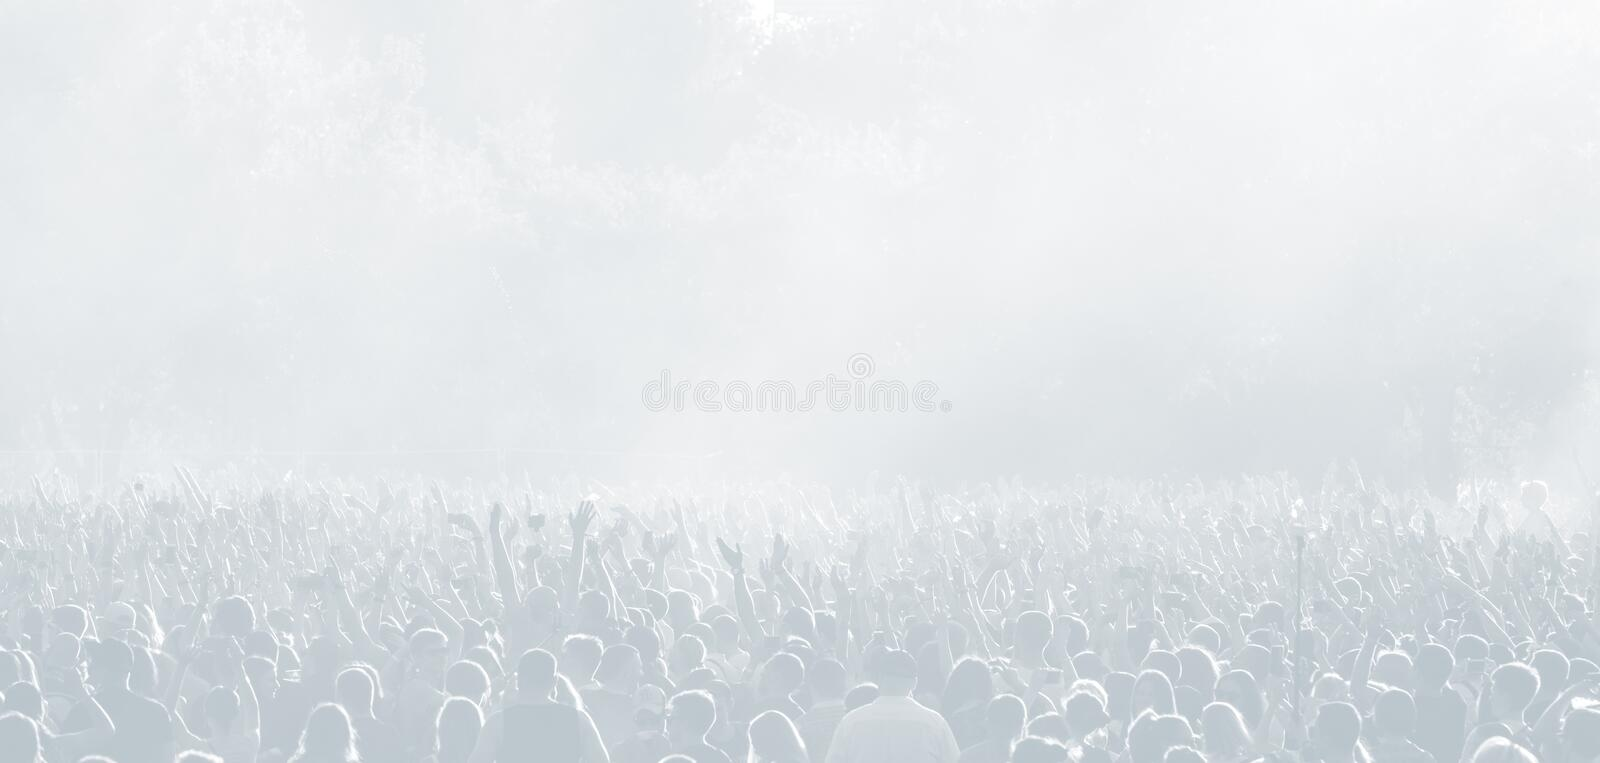 Crowd of spectators at a concert in light blue tonality. High key background with a people on an open playground at a concert. Abstract soft focus image with royalty free stock photography